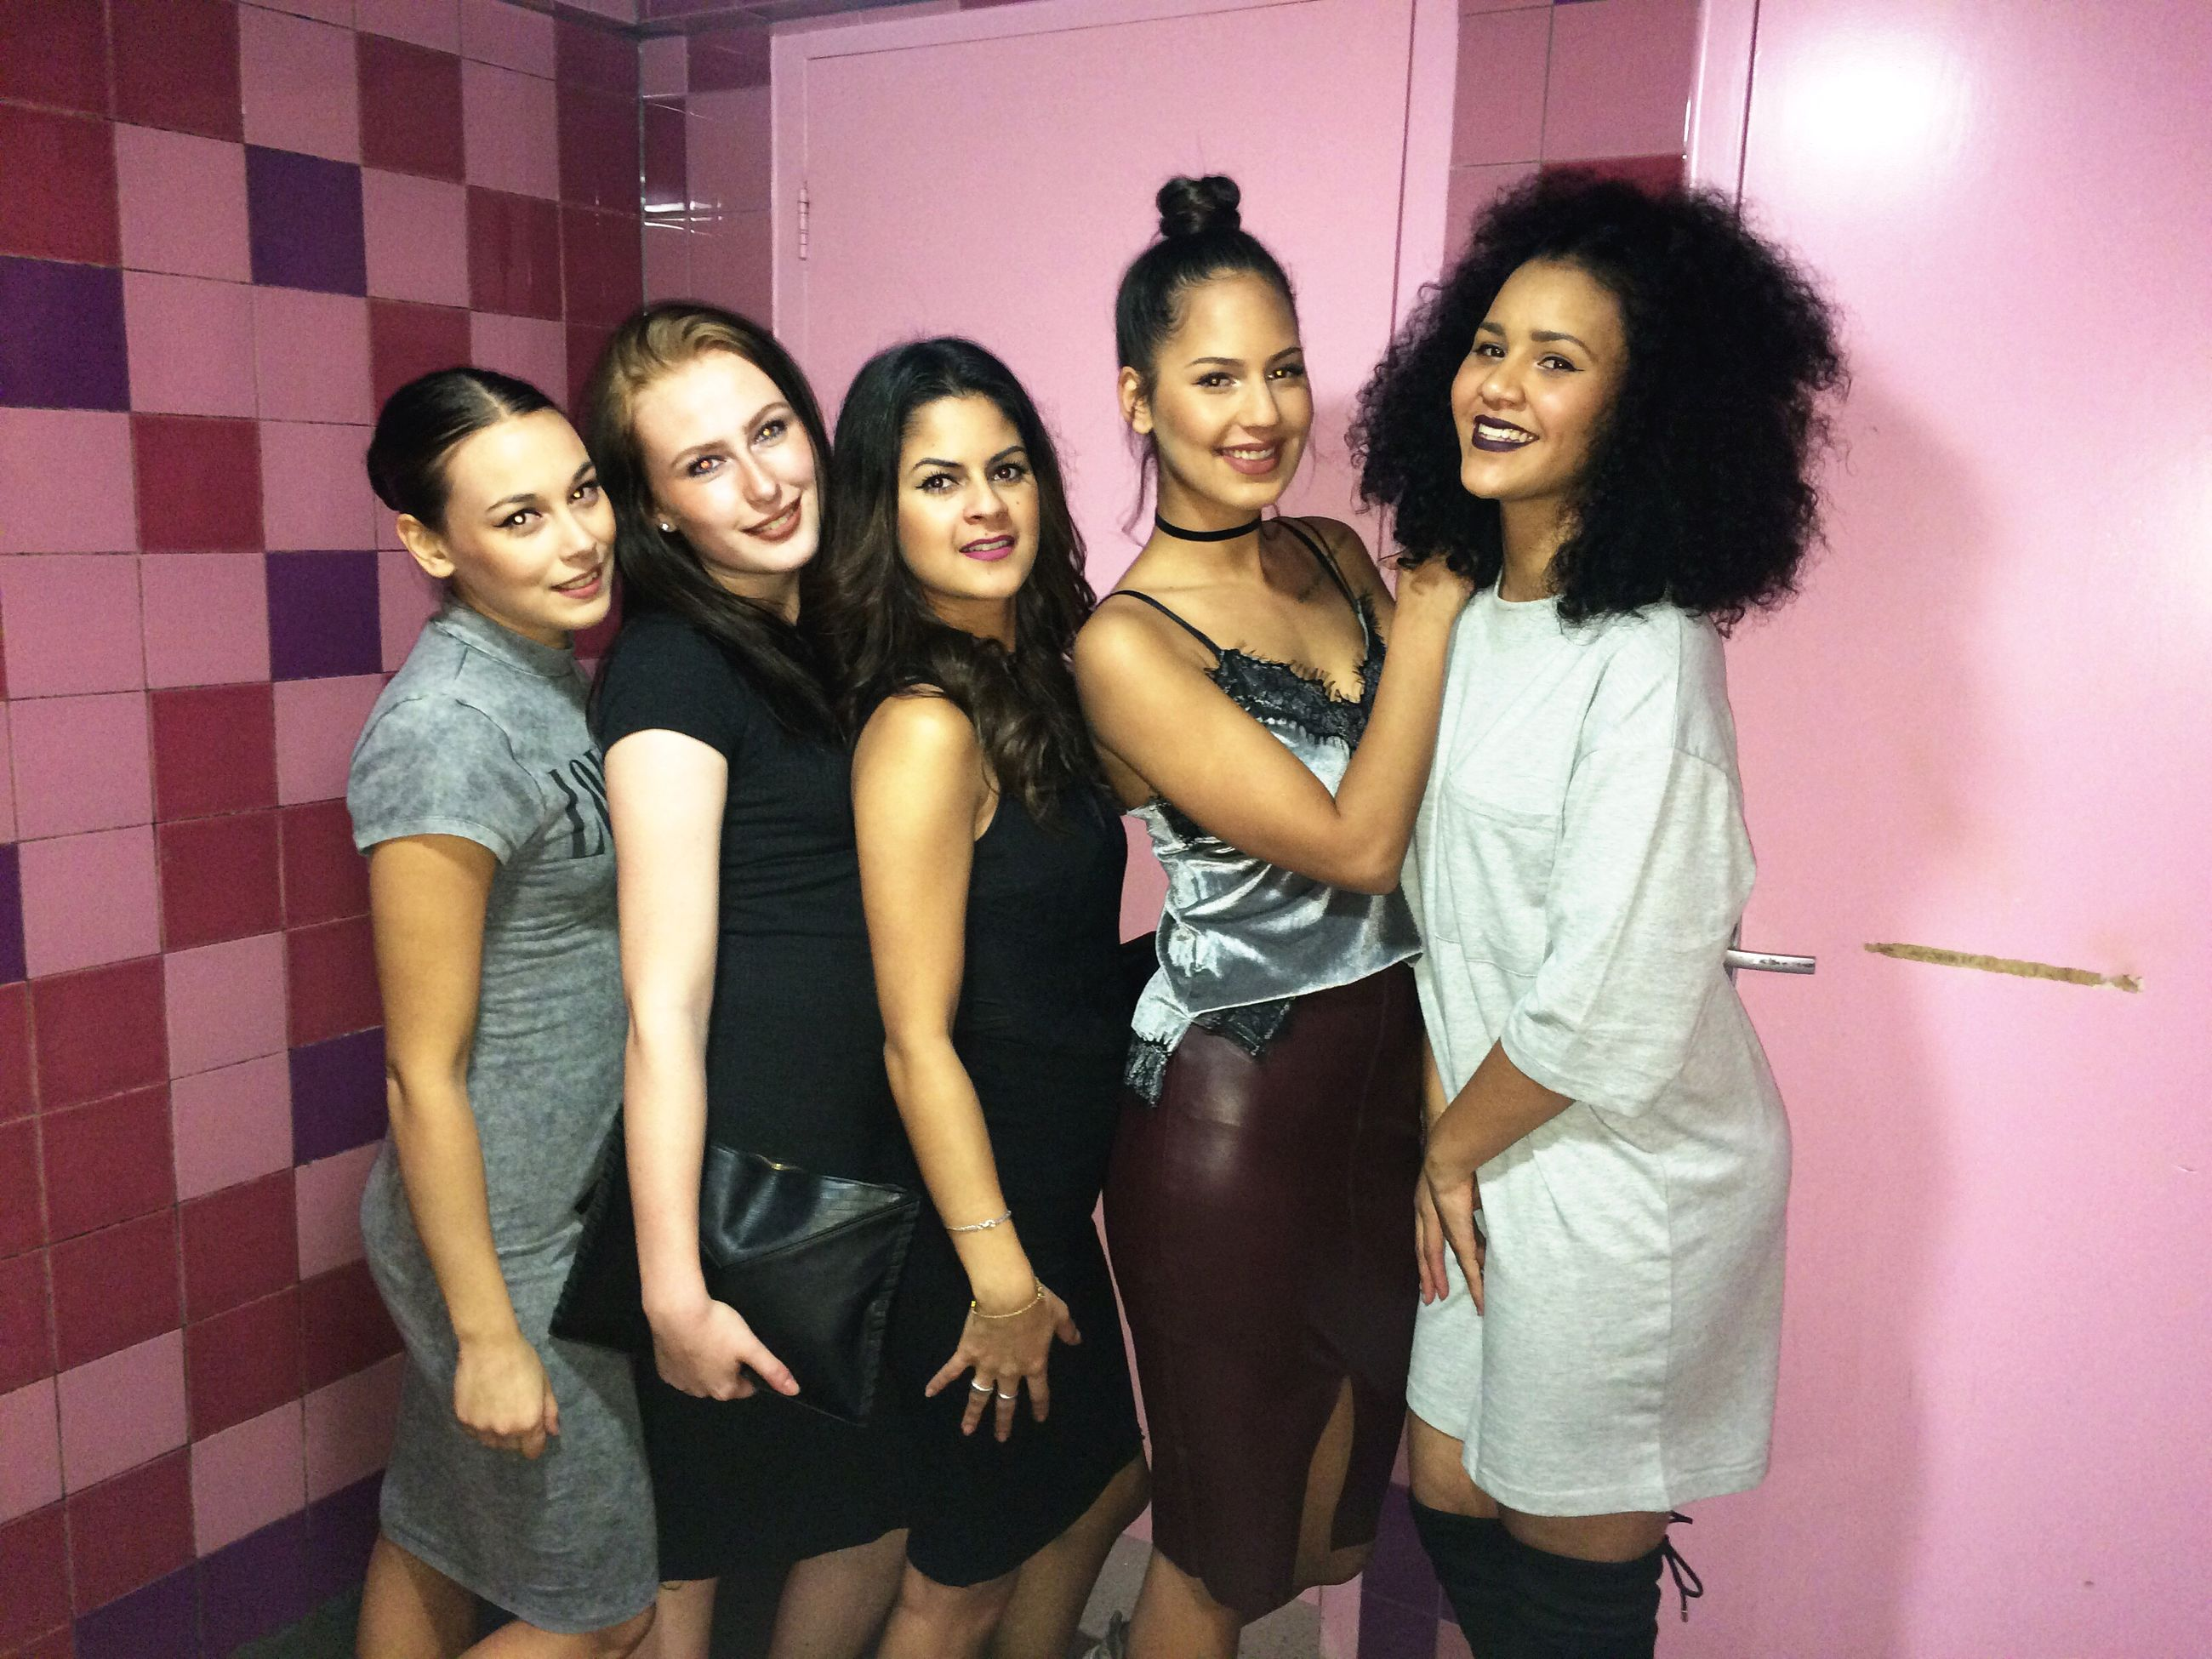 friendship, party - social event, togetherness, fun, young adult, enjoyment, portrait, night, happiness, dancing, people, nightlife, carefree, cheerful, adults only, leisure activity, young women, smiling, nightclub, indoors, adult